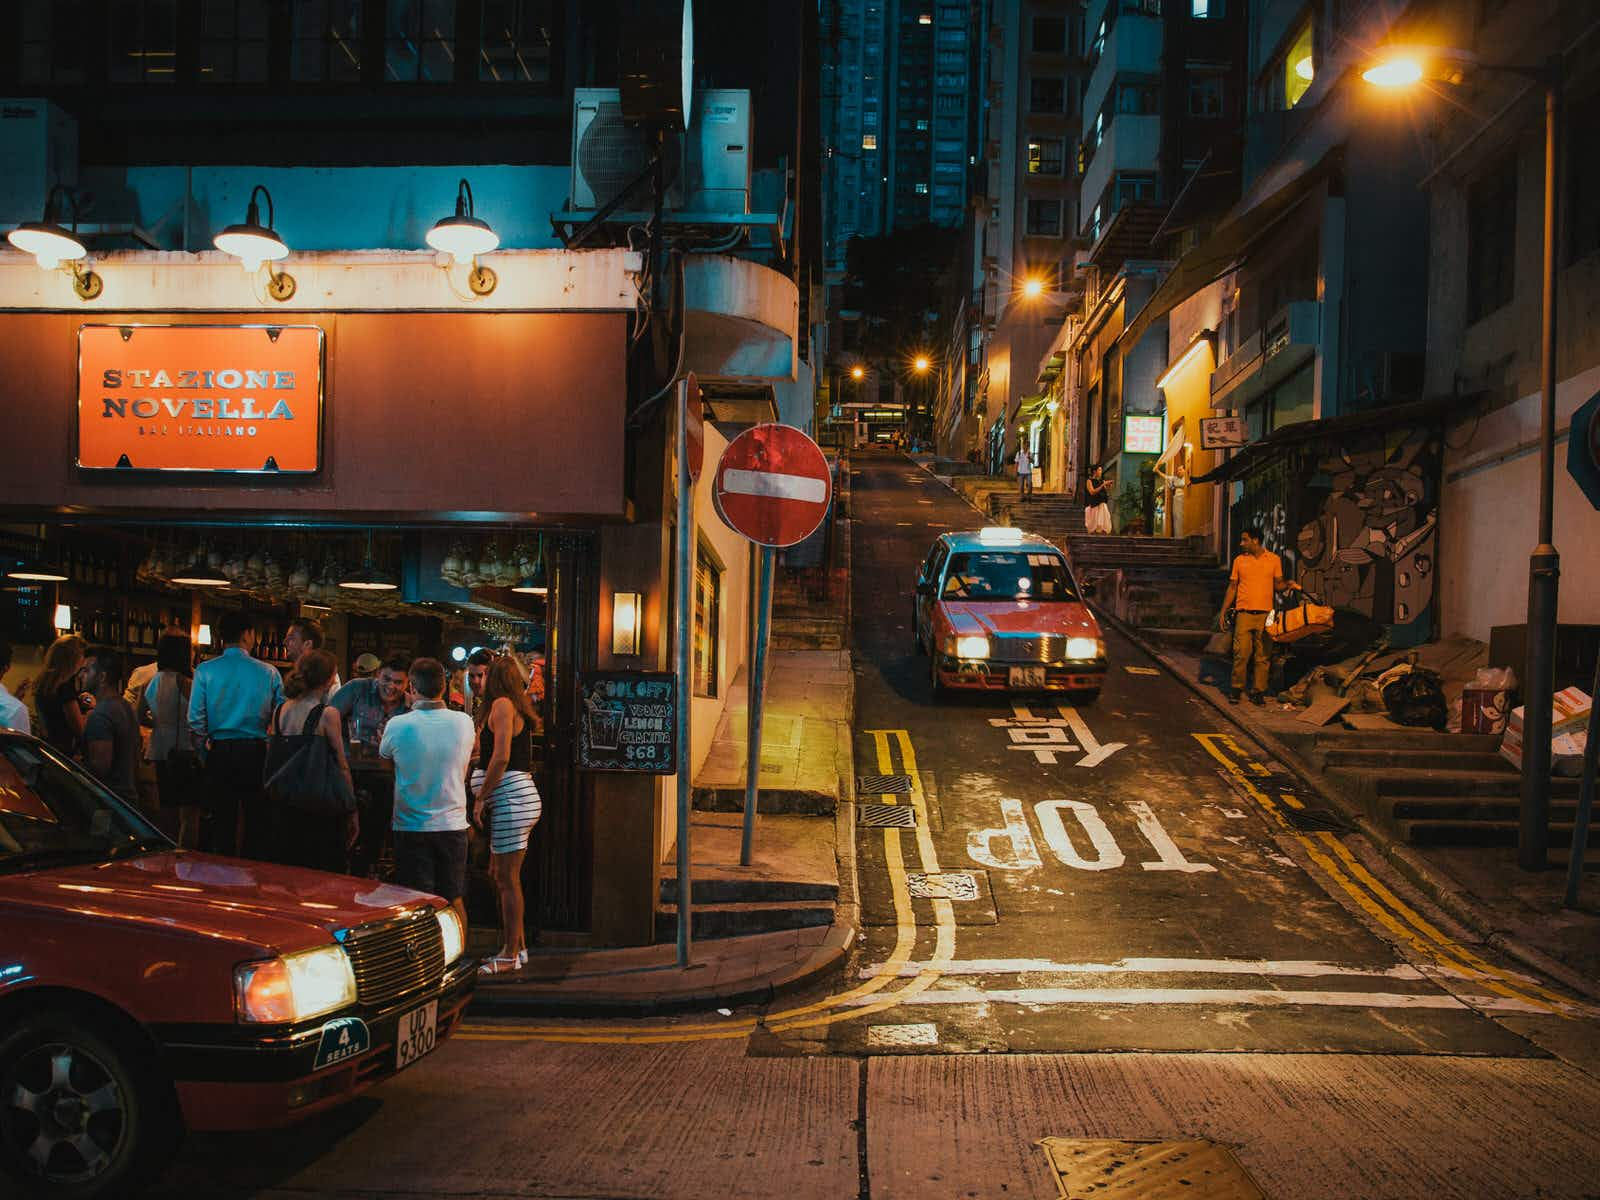 A dance of contrasts: some of Hong Kong's oldest streets are seeing new life © JoeyCheung / Shutterstock